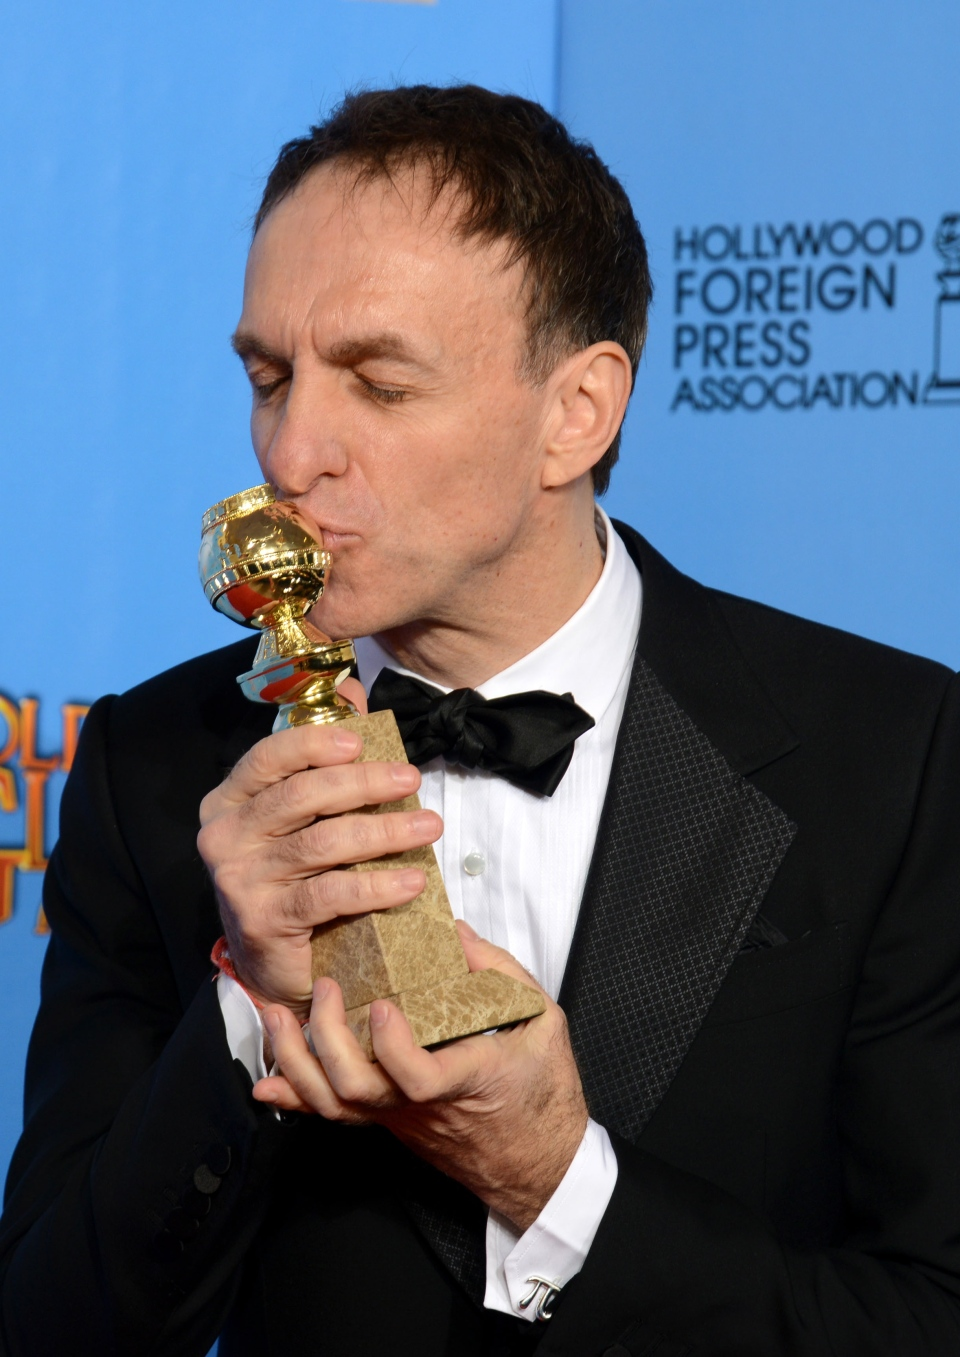 Mychael Danna poses with the award for best original score in a motion picture for 'Life of Pi' backstage at the 70th Annual Golden Globe Awards at the Beverly Hilton Hotel on Sunday, Jan. 13, 2013, in Beverly Hills, Calif. (Jordan Strauss / Invision)